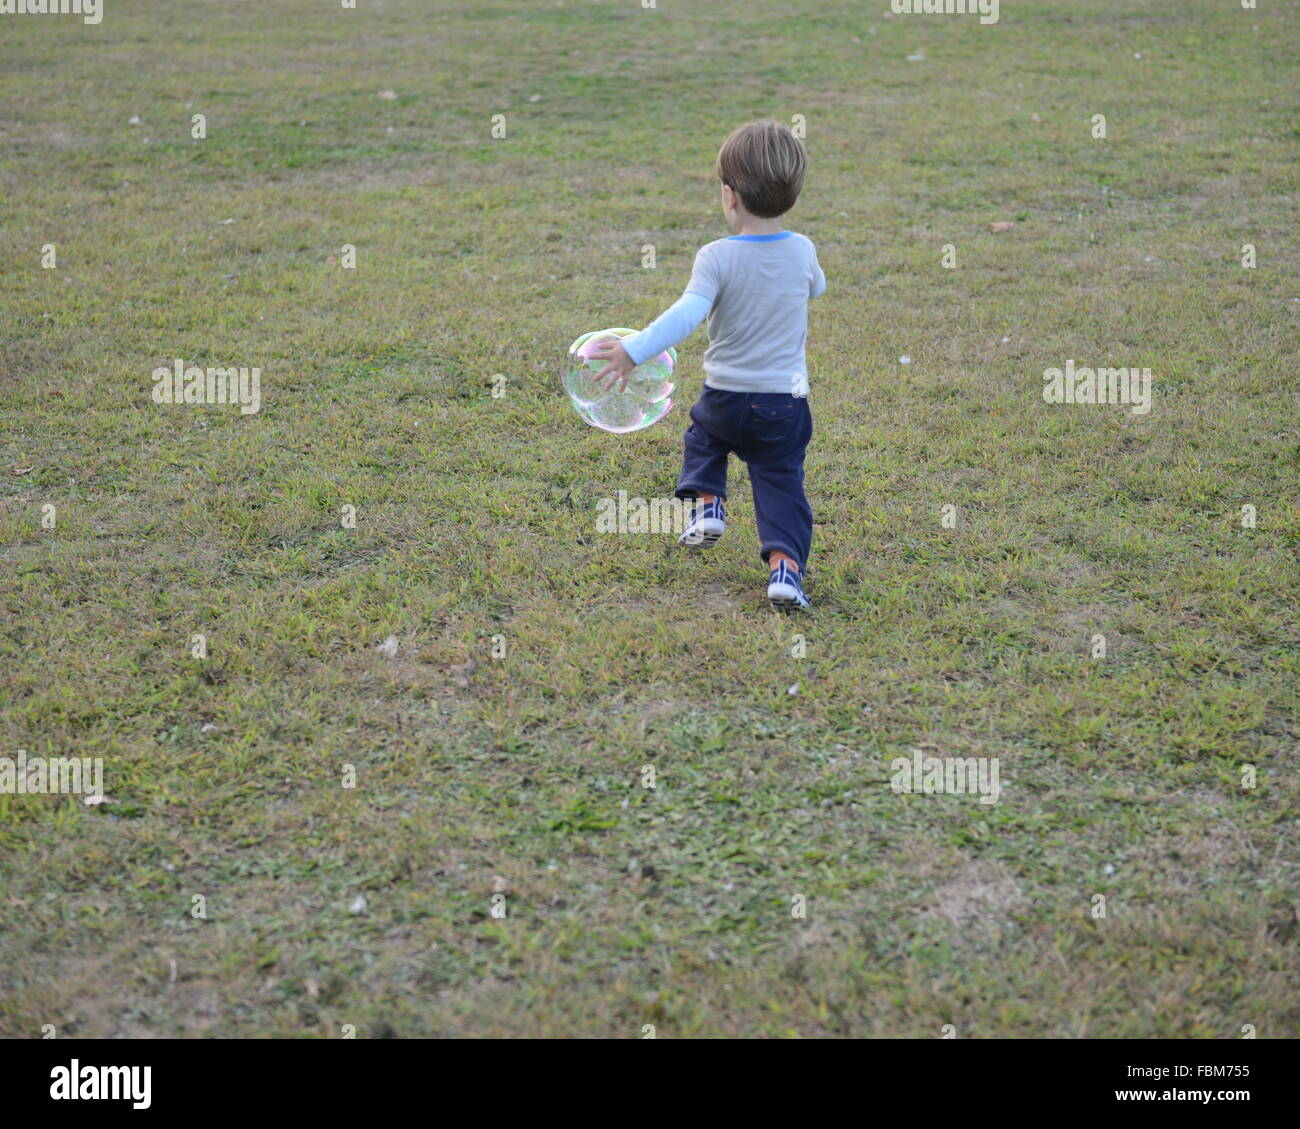 Boy Running With Soap Suds Bubble - Stock Image